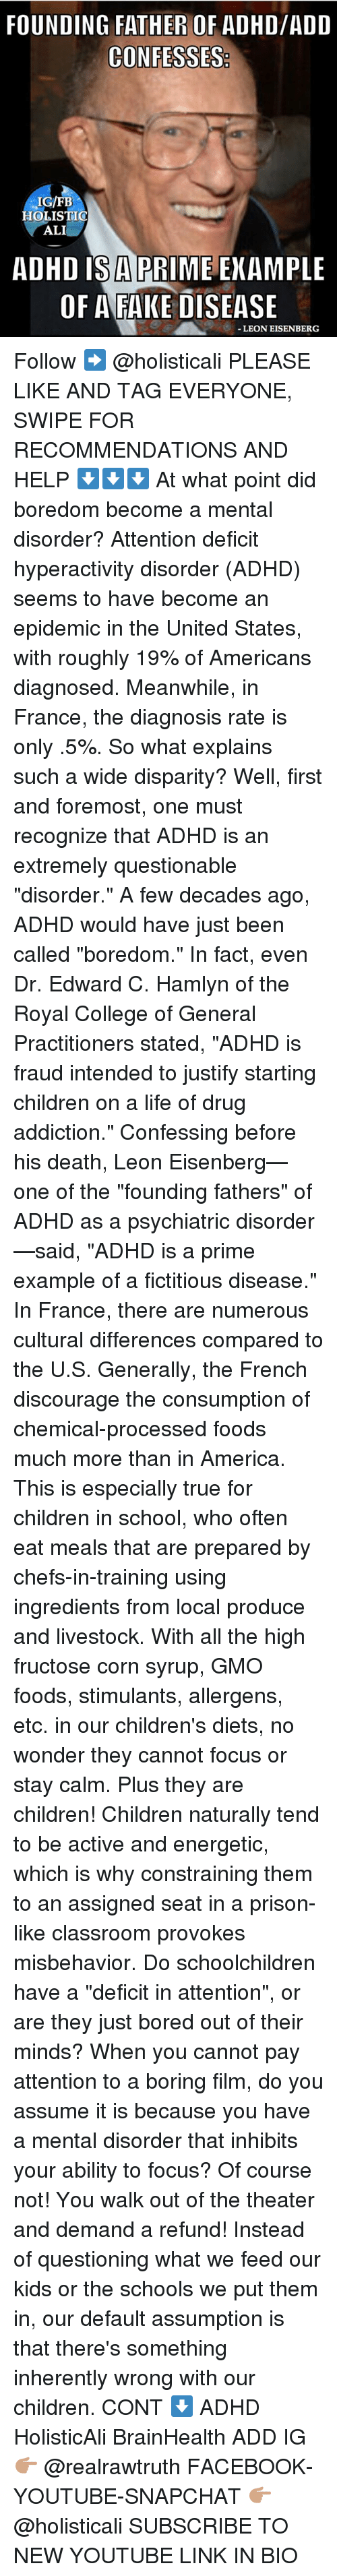 "Ali, America, and Bored: FOUNDING FATHER OF ADHD/ADD  IG/FB  HOLISTIO  ALI  ADHD IS A PRIME ENAMPLE  OF AFAKE DISEASE  LEON EISENBERG Follow ➡️ @holisticali PLEASE LIKE AND TAG EVERYONE, SWIPE FOR RECOMMENDATIONS AND HELP ⬇️⬇️⬇️ At what point did boredom become a mental disorder? Attention deficit hyperactivity disorder (ADHD) seems to have become an epidemic in the United States, with roughly 19% of Americans diagnosed. Meanwhile, in France, the diagnosis rate is only .5%. So what explains such a wide disparity? Well, first and foremost, one must recognize that ADHD is an extremely questionable ""disorder."" A few decades ago, ADHD would have just been called ""boredom."" In fact, even Dr. Edward C. Hamlyn of the Royal College of General Practitioners stated, ""ADHD is fraud intended to justify starting children on a life of drug addiction."" Confessing before his death, Leon Eisenberg—one of the ""founding fathers"" of ADHD as a psychiatric disorder—said, ""ADHD is a prime example of a fictitious disease."" In France, there are numerous cultural differences compared to the U.S. Generally, the French discourage the consumption of chemical-processed foods much more than in America. This is especially true for children in school, who often eat meals that are prepared by chefs-in-training using ingredients from local produce and livestock. With all the high fructose corn syrup, GMO foods, stimulants, allergens, etc. in our children's diets, no wonder they cannot focus or stay calm. Plus they are children! Children naturally tend to be active and energetic, which is why constraining them to an assigned seat in a prison-like classroom provokes misbehavior. Do schoolchildren have a ""deficit in attention"", or are they just bored out of their minds? When you cannot pay attention to a boring film, do you assume it is because you have a mental disorder that inhibits your ability to focus? Of course not! You walk out of the theater and demand a refund! Instead of questioning what we feed our kids or the schools we put them in, our default assumption is that there's something inherently wrong with our children. CONT ⬇️ ADHD HolisticAli BrainHealth ADD IG 👉🏽 @realrawtruth FACEBOOK-YOUTUBE-SNAPCHAT 👉🏽 @holisticali SUBSCRIBE TO NEW YOUTUBE LINK IN BIO"